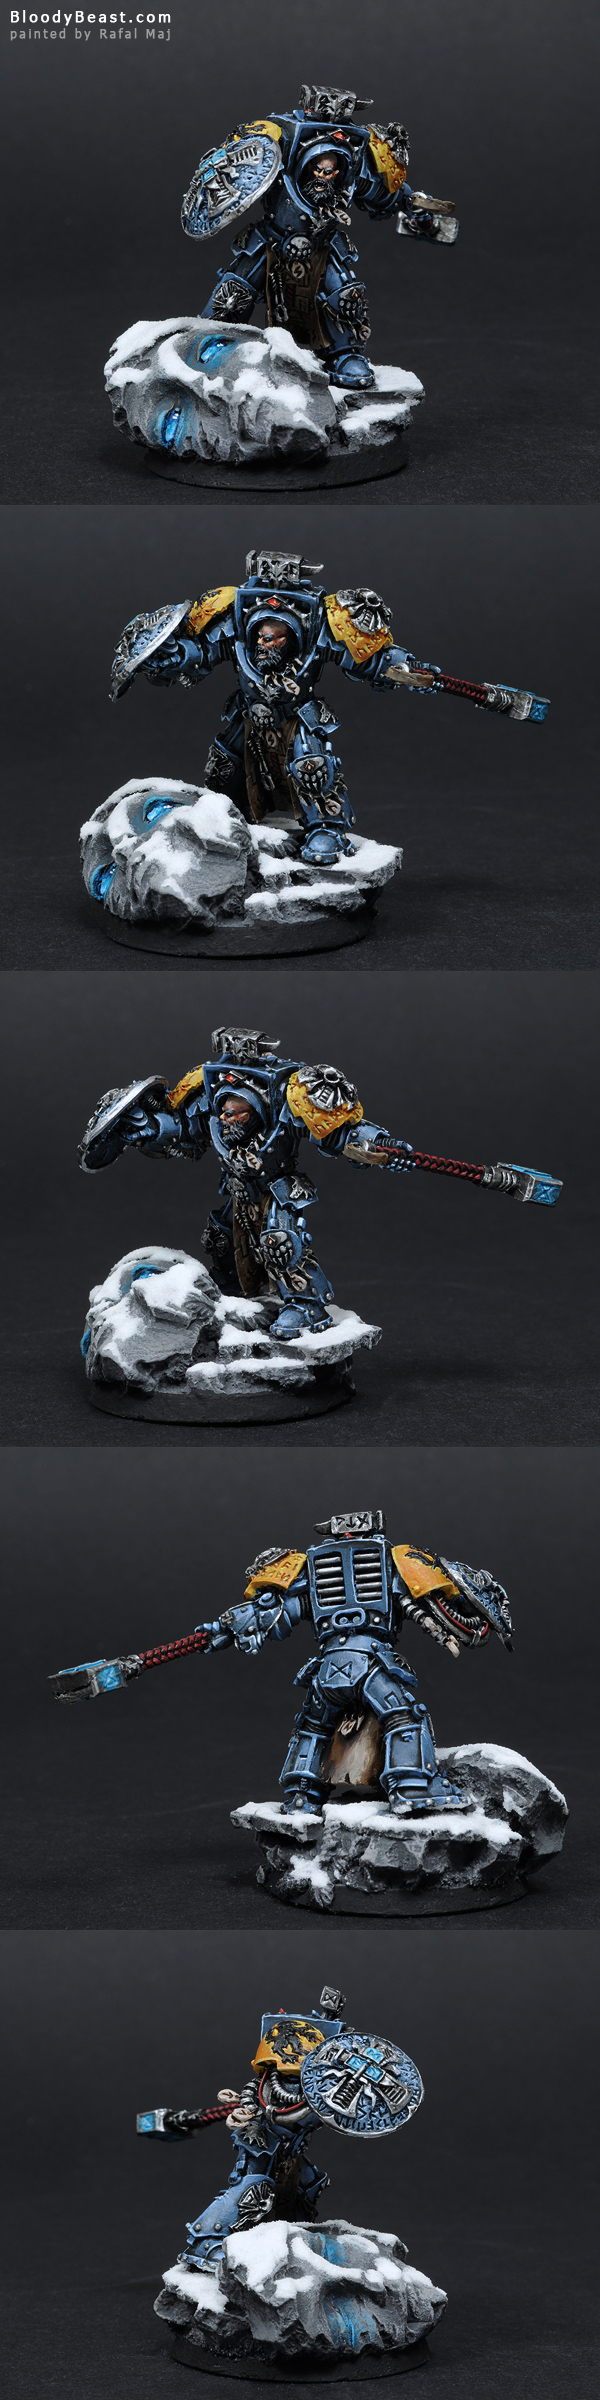 Space Wolves Arjac Rockfist in Terminator Armour painted by Rafal Maj (BloodyBeast.com)